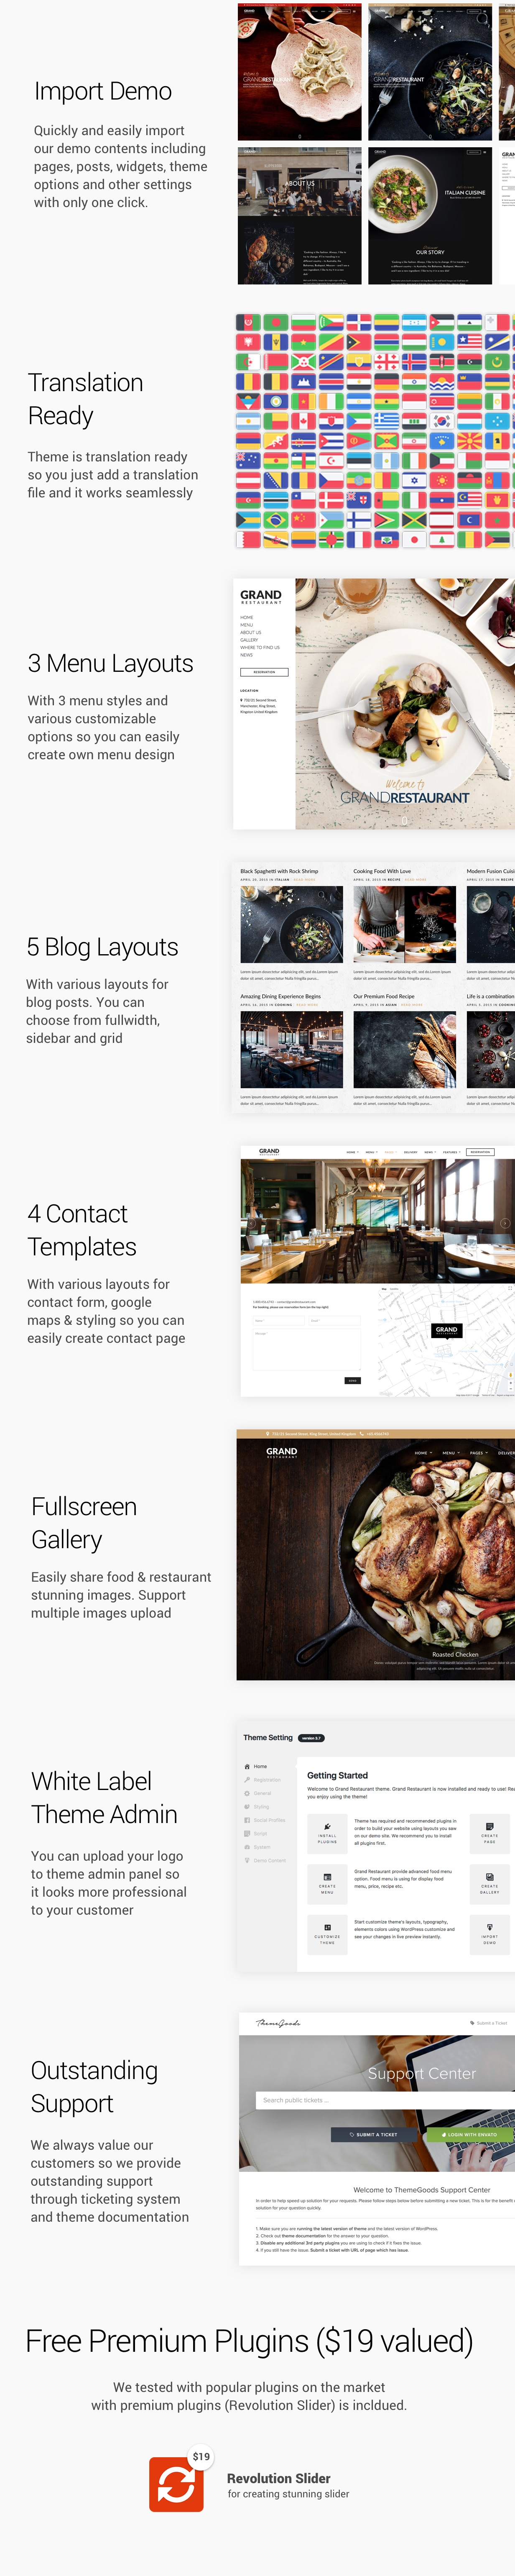 part5 - Grand Restaurant WordPress